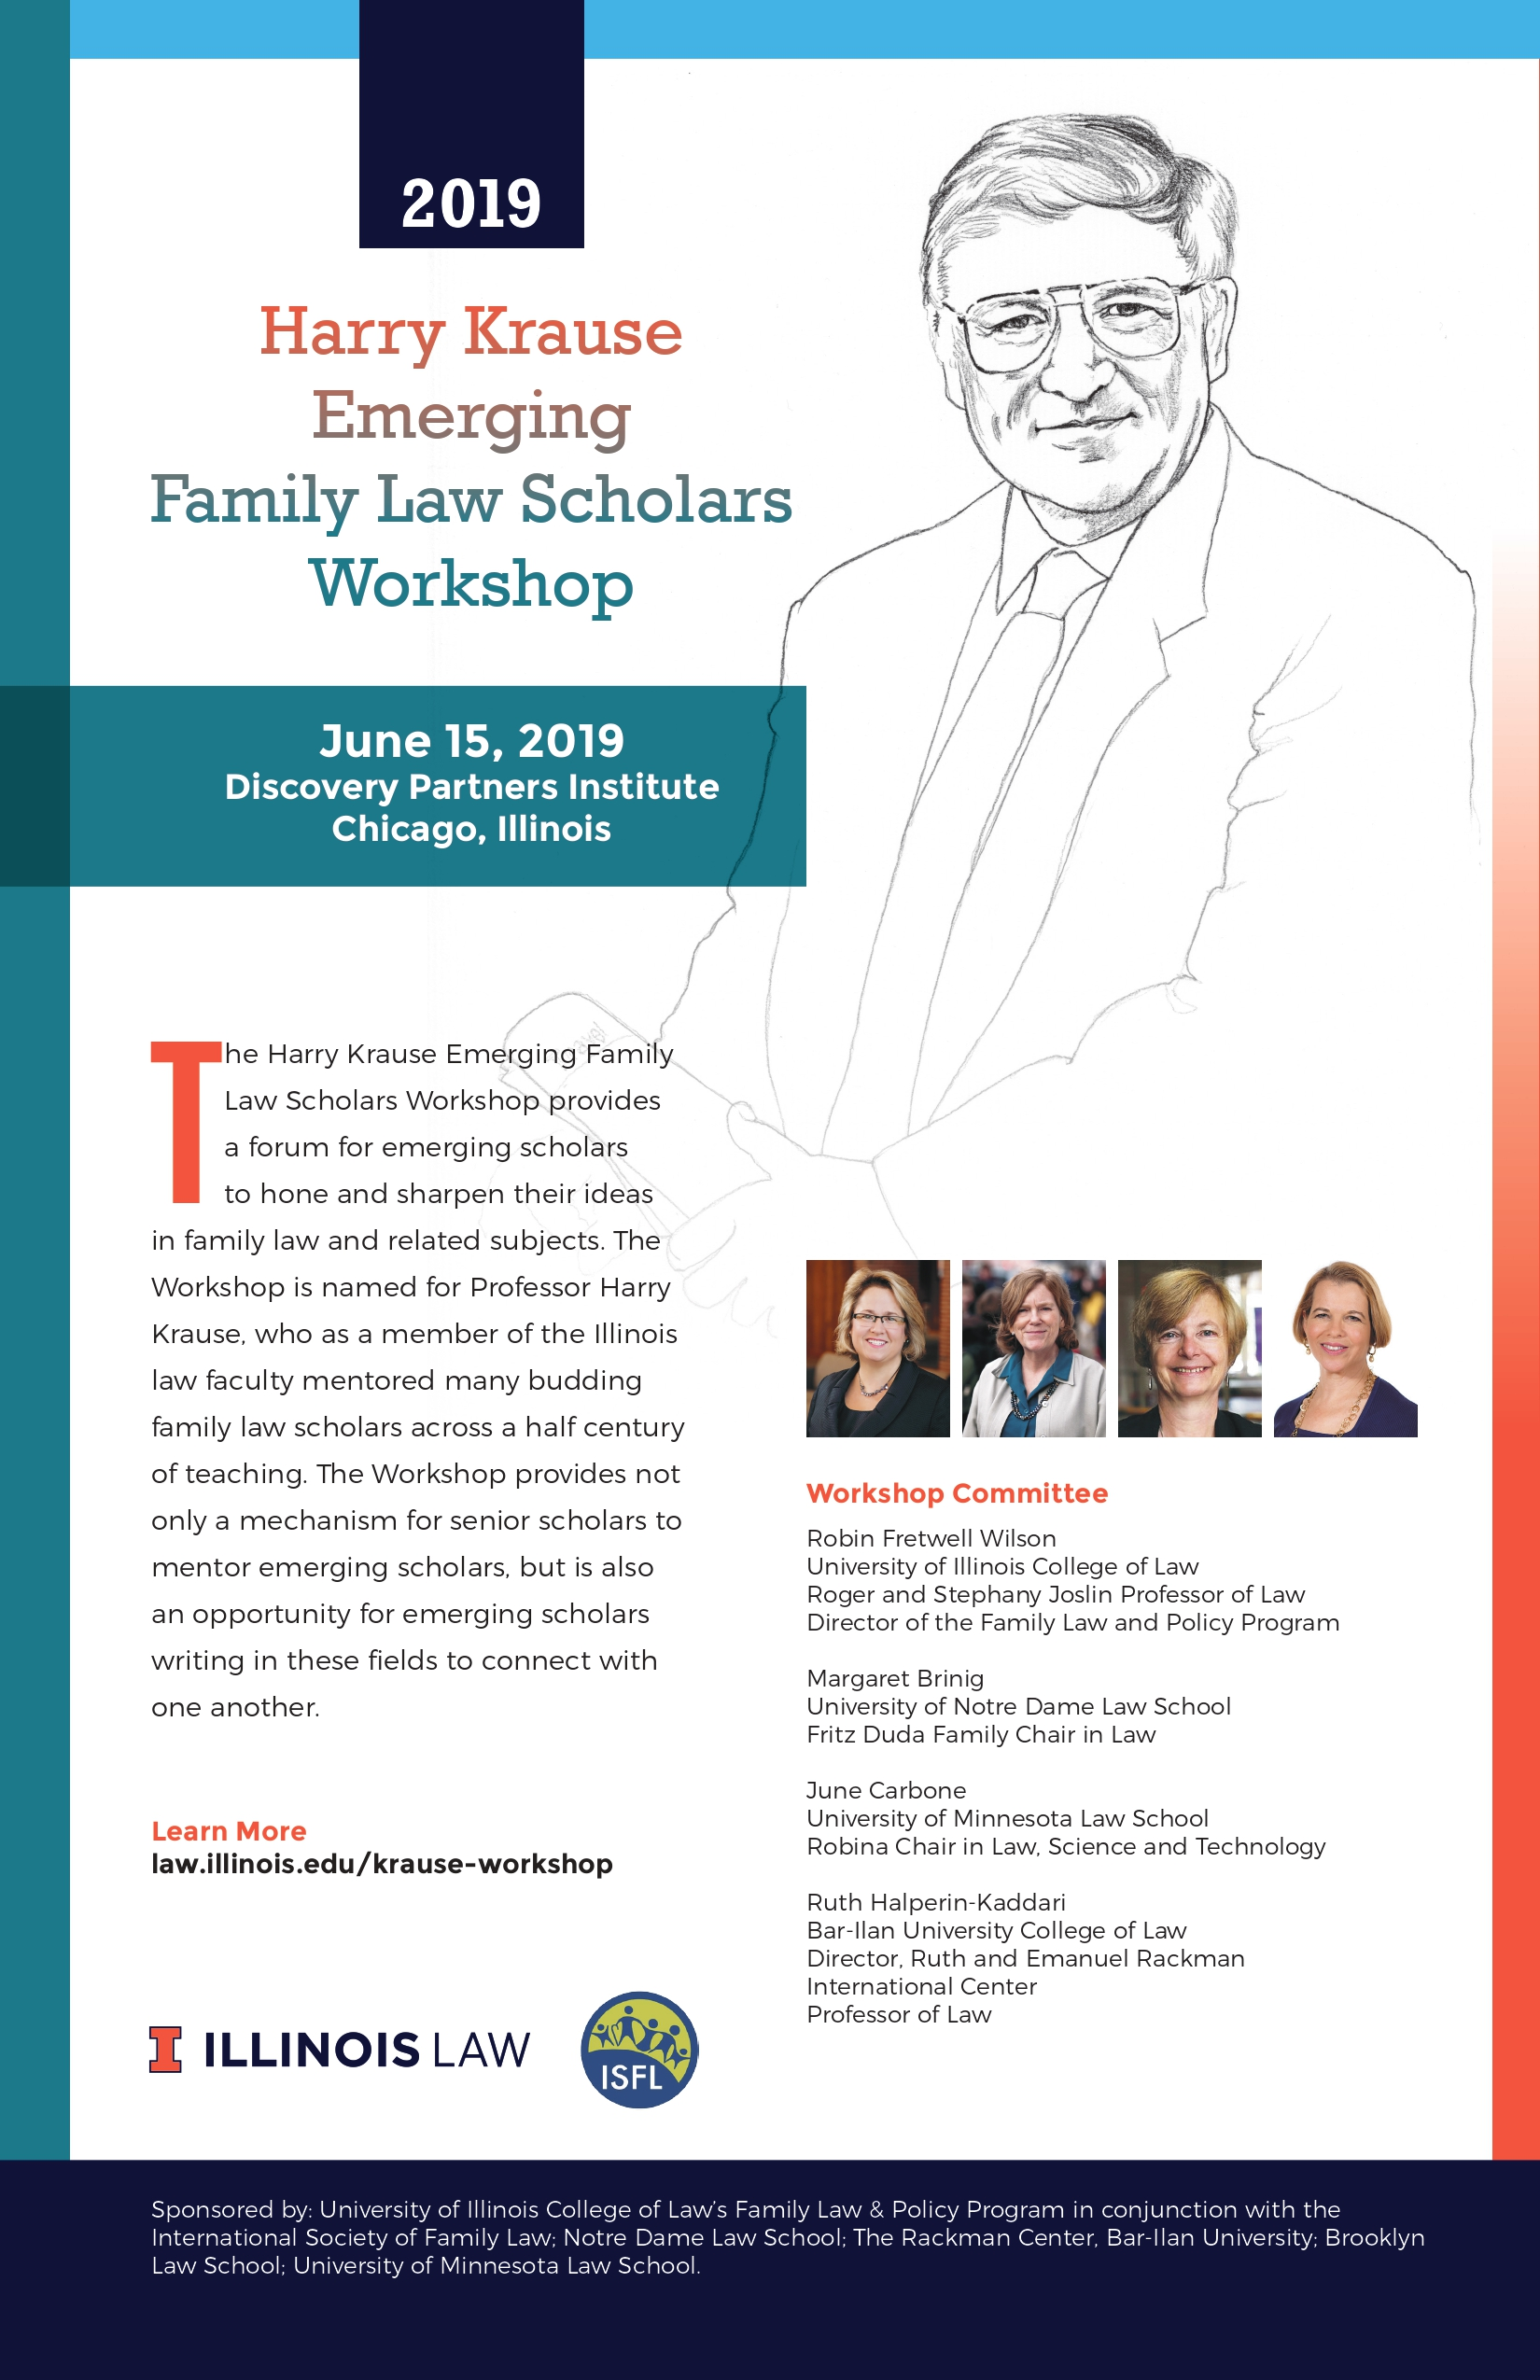 Harry_Krause_Family_Law_Workshop_poster_final_page-0002.jpg